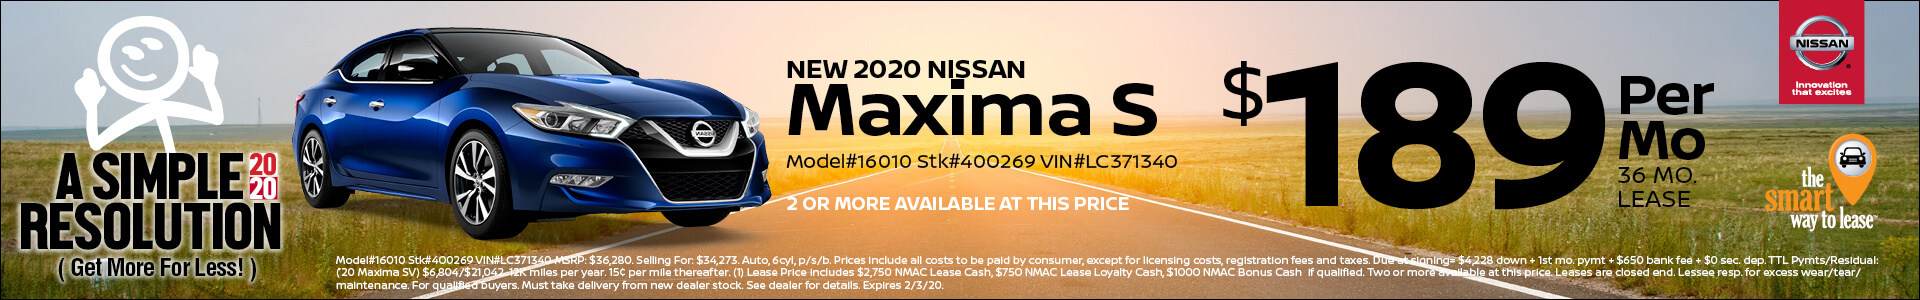 2019 Nissan Maxima Lease for $189